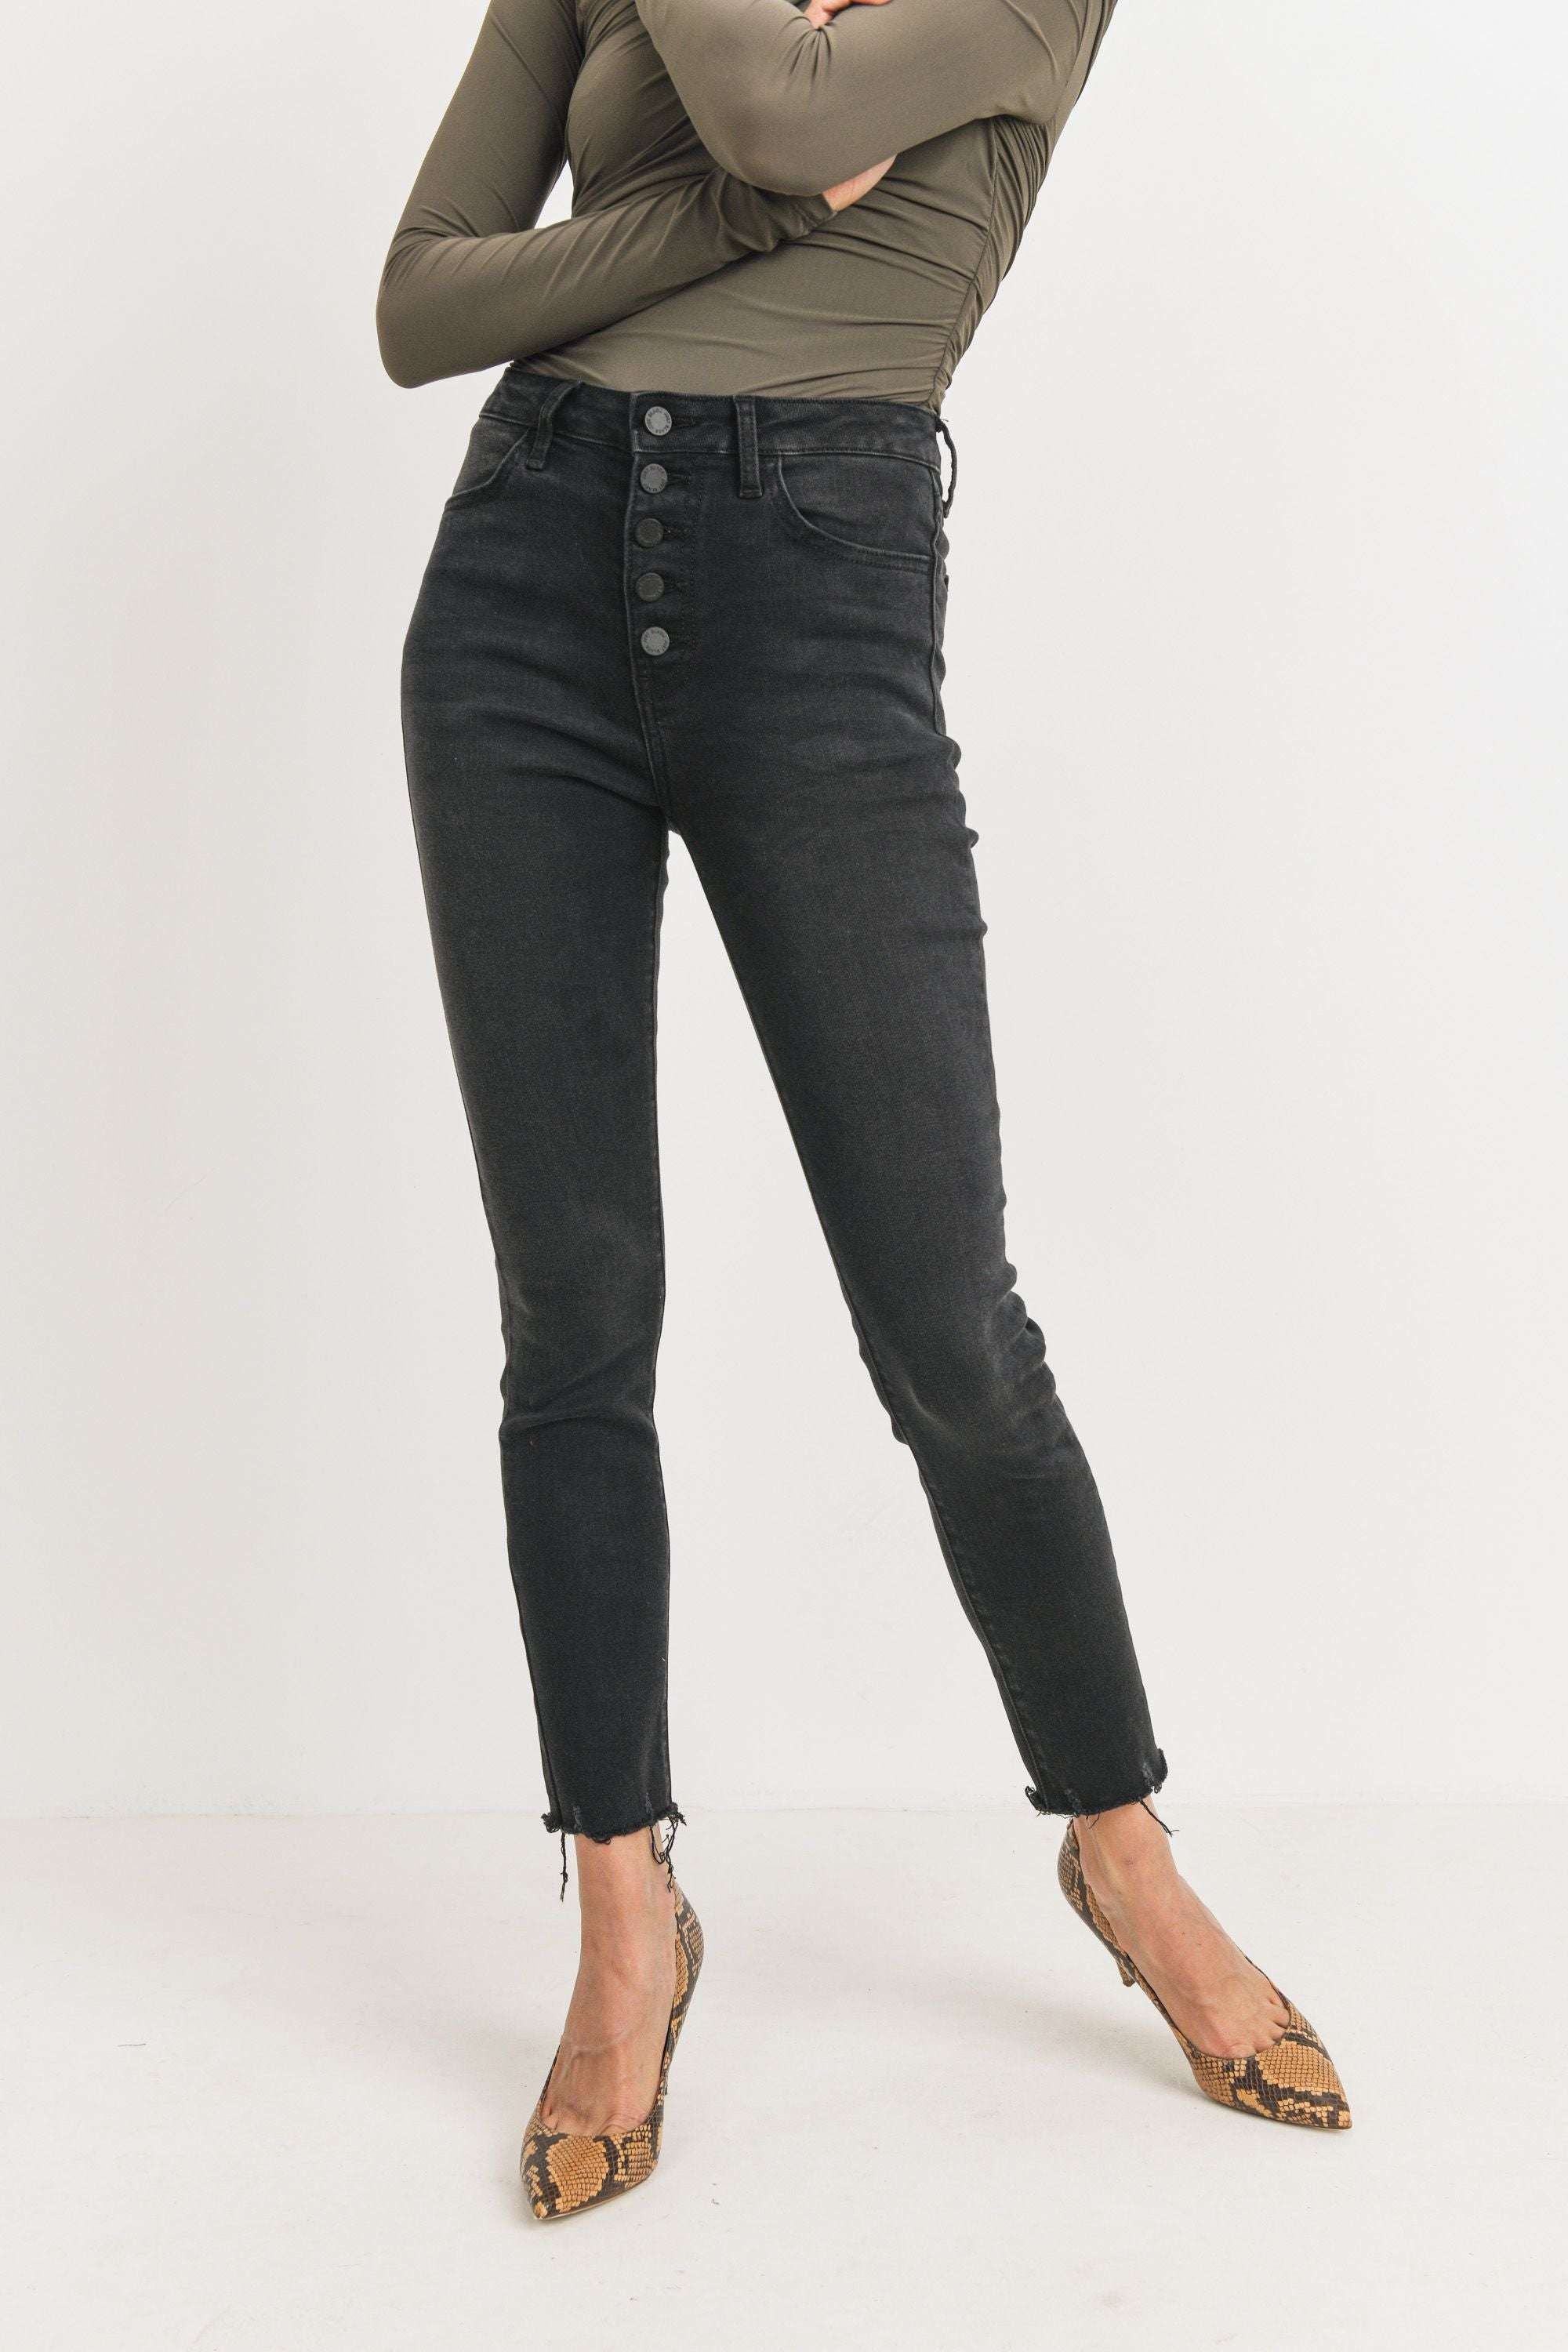 Washed Black High Rise Button Up Skinny